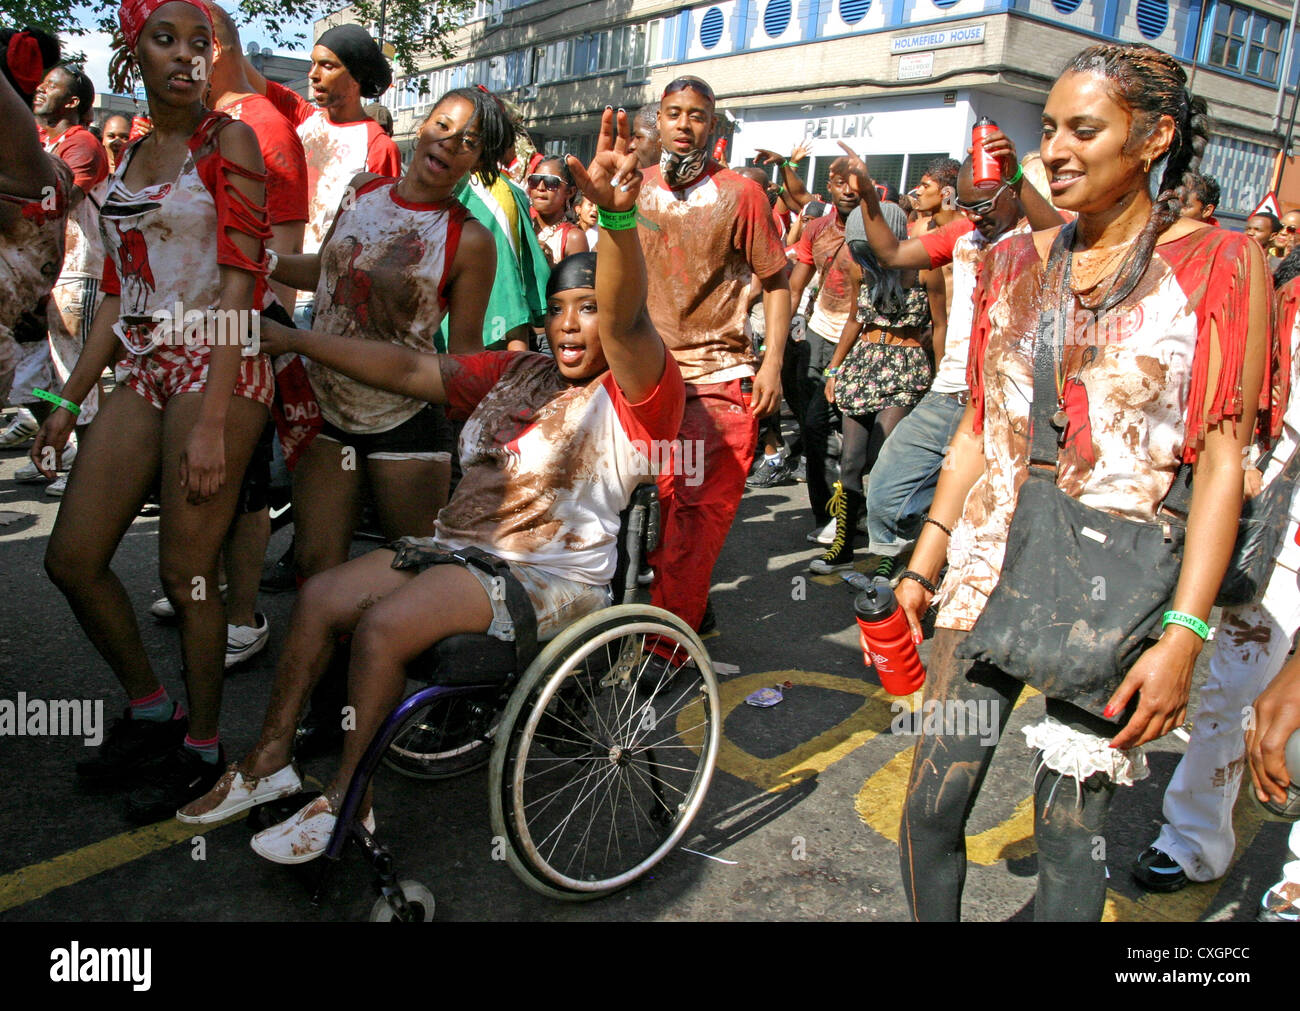 person in wheelchair taking part  in Notting Hill festival - Stock Image